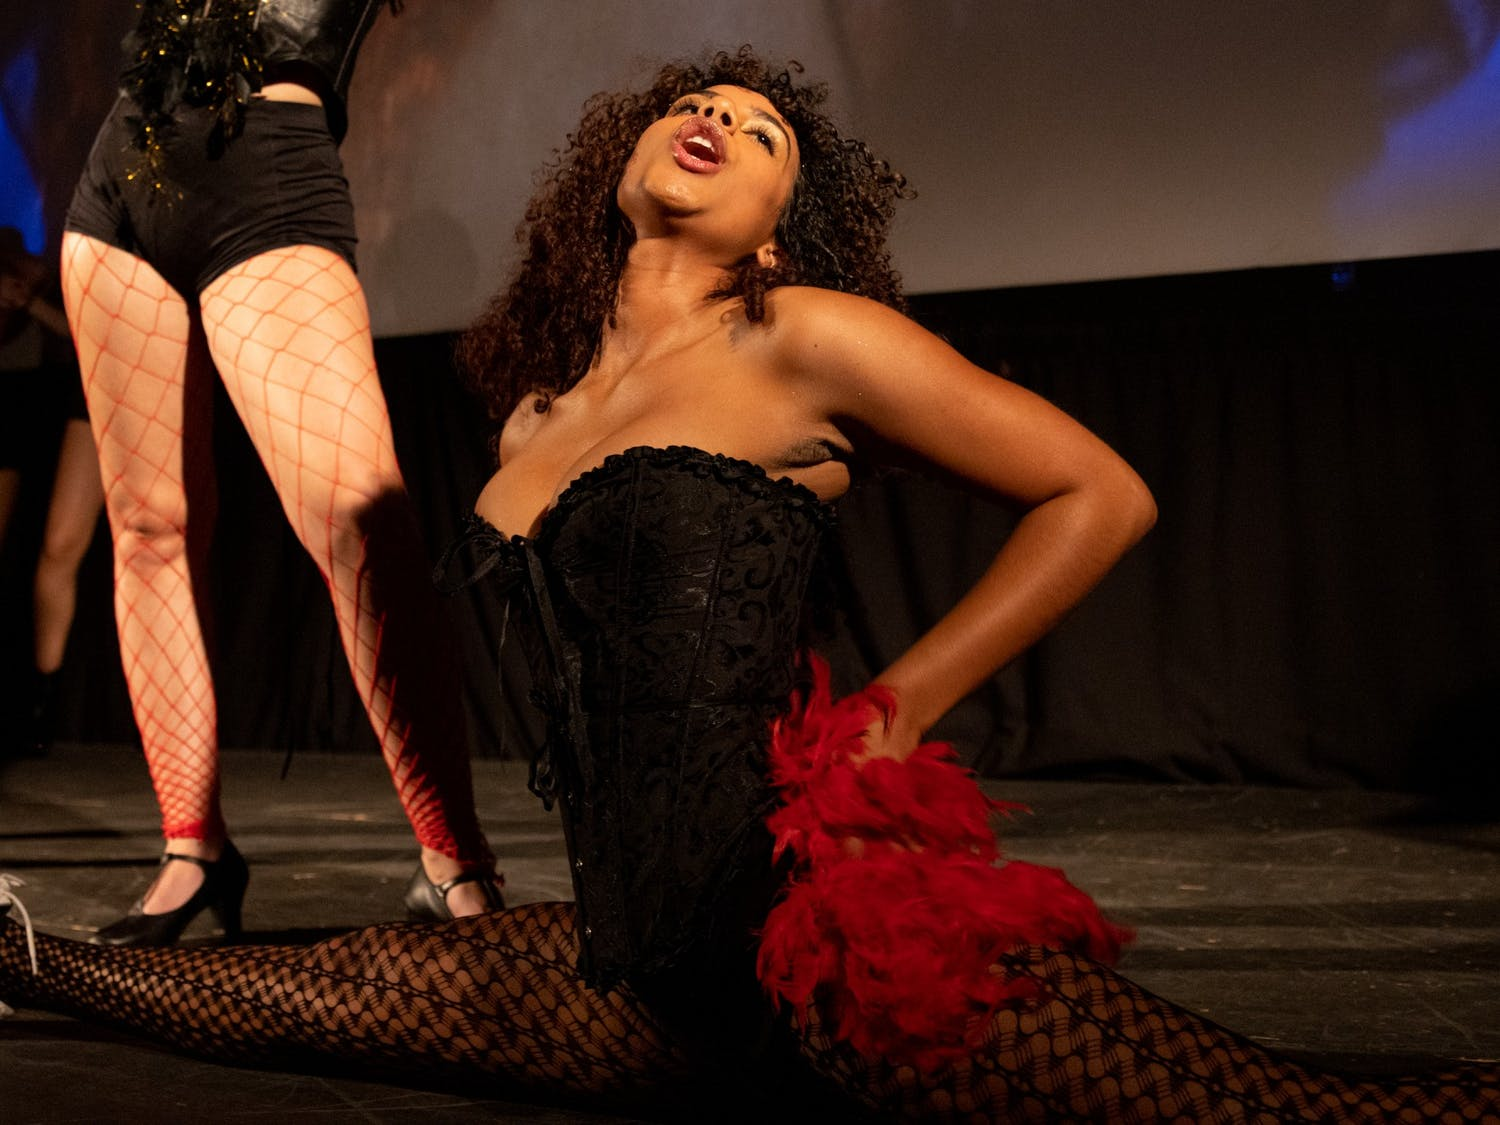 UNC junior Tiffany Melenzio portrays Rocky during an Oct. 26 technical rehearsal of the Rocky Horror Picture Show at the Varsity Theatre. The production is an annual tradition of the UNC Pauper Players.